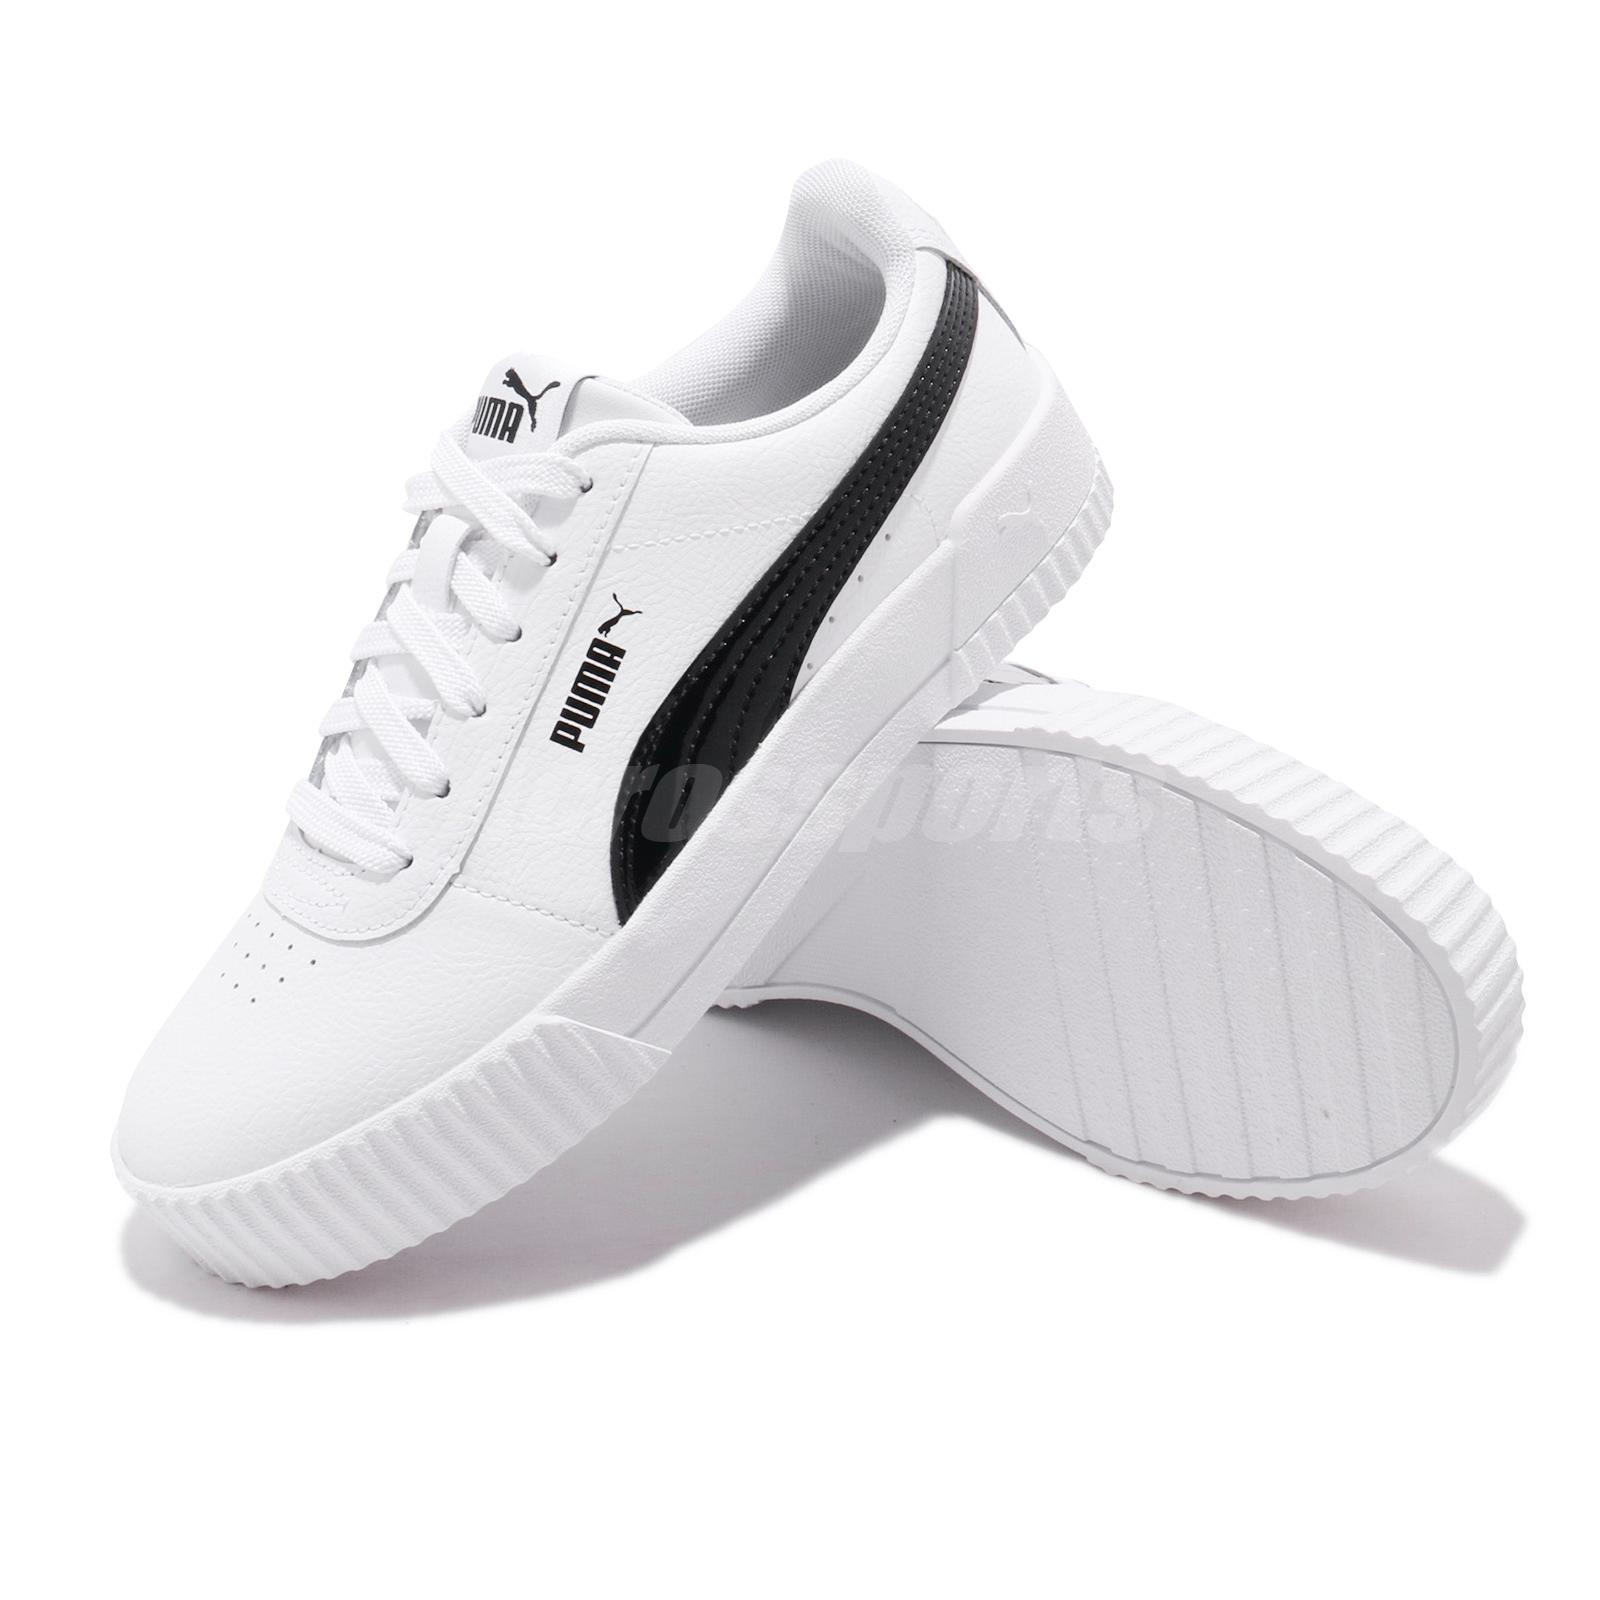 Détails sur Puma Carina PFS Wns White Black Women Casual Lifestyle Shoes Sneakers 371212 02